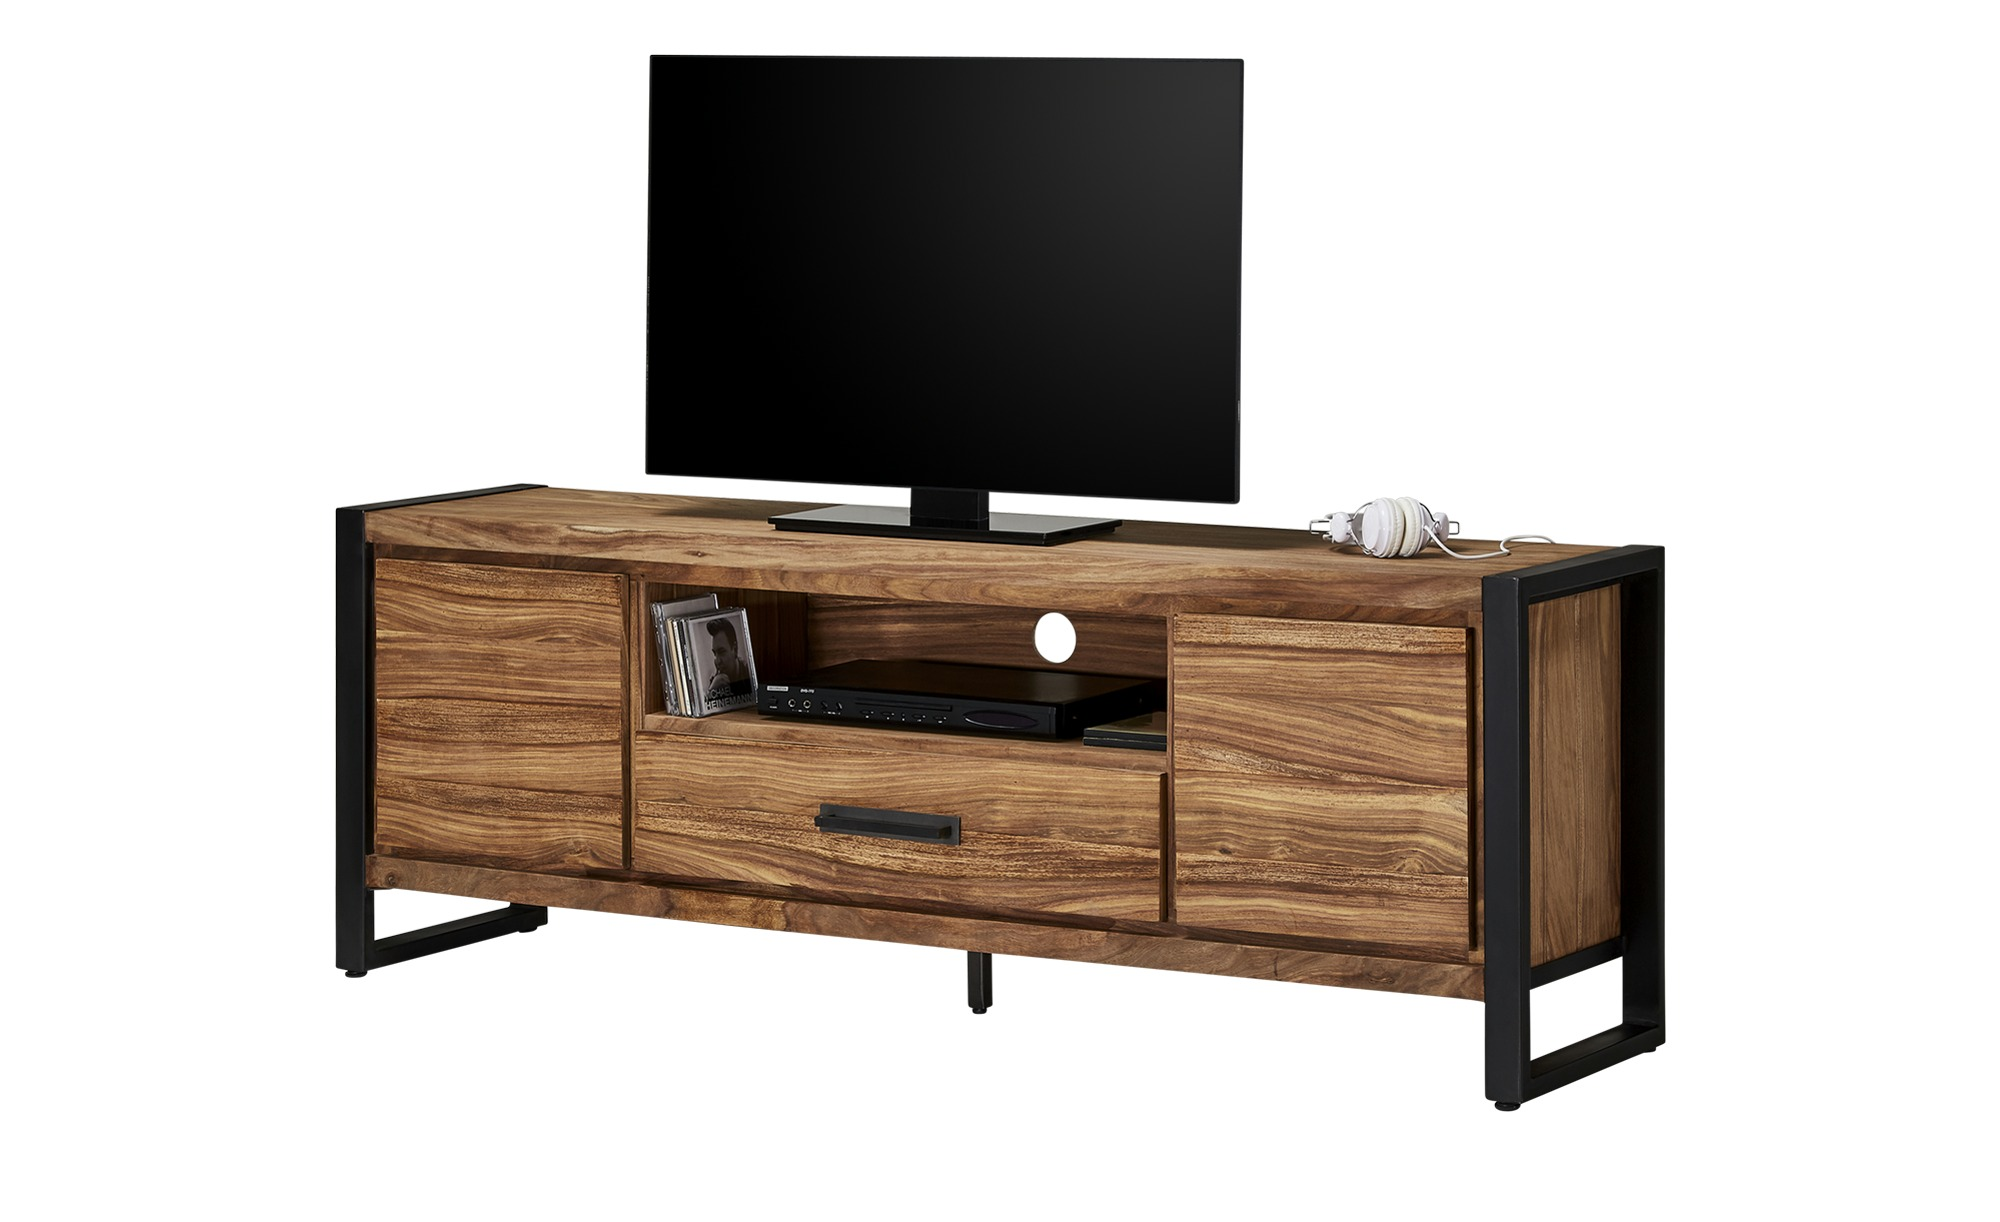 gray jones tv lowboard tierra fuego 170 cm 60 cm 42 cm kommoden sideboards lowboards mobel kraft